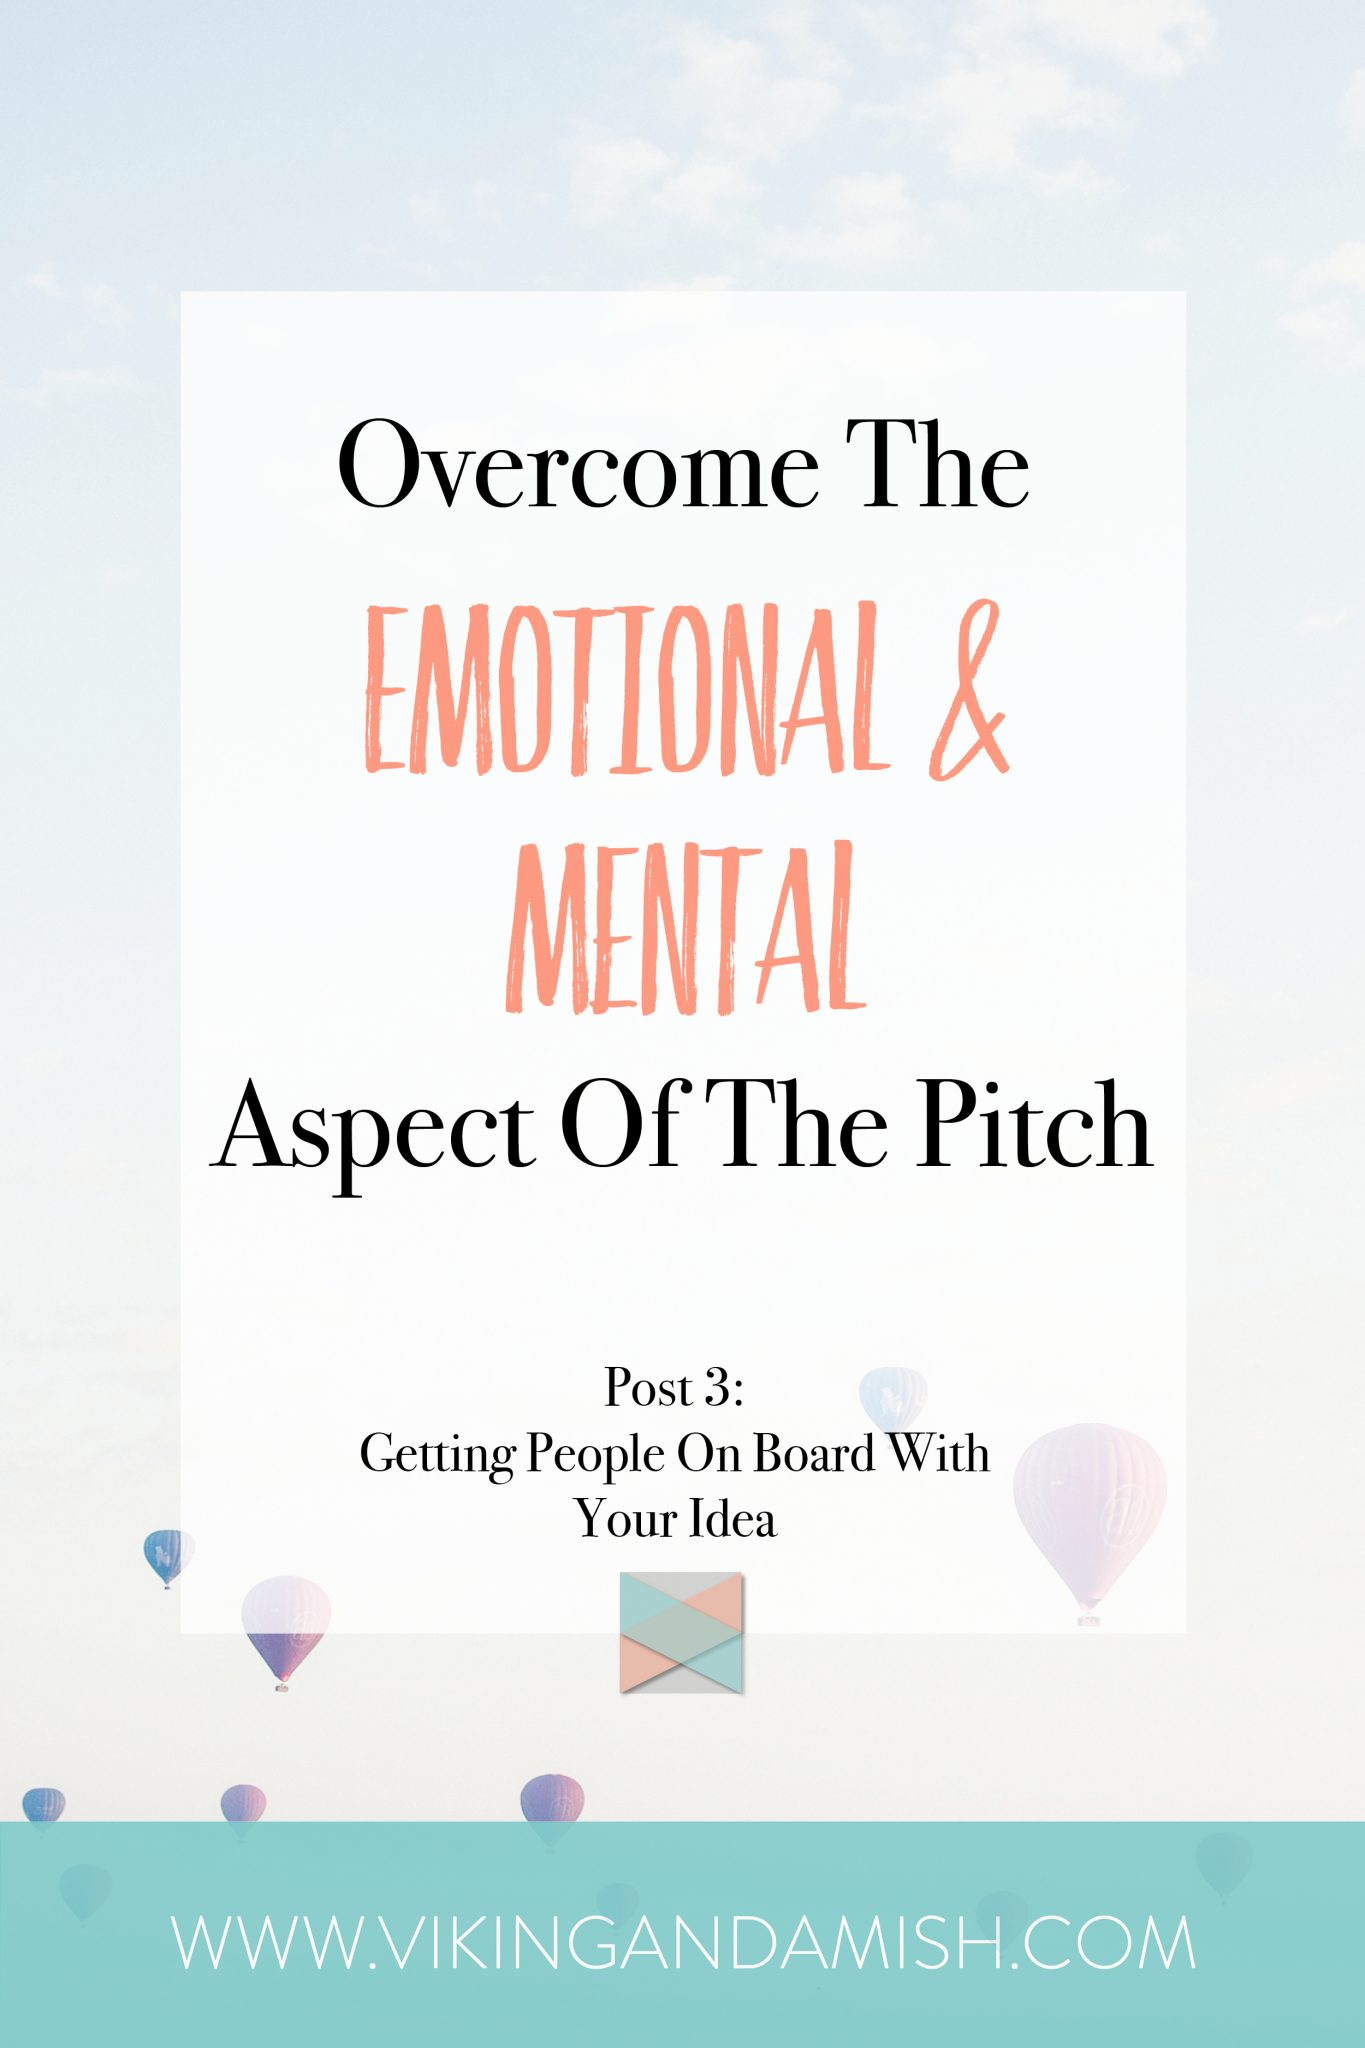 Win At The Emotional And Mental Aspect Of The Pitch - Learn how to get people on board with your idea | www.vikingandamish.com